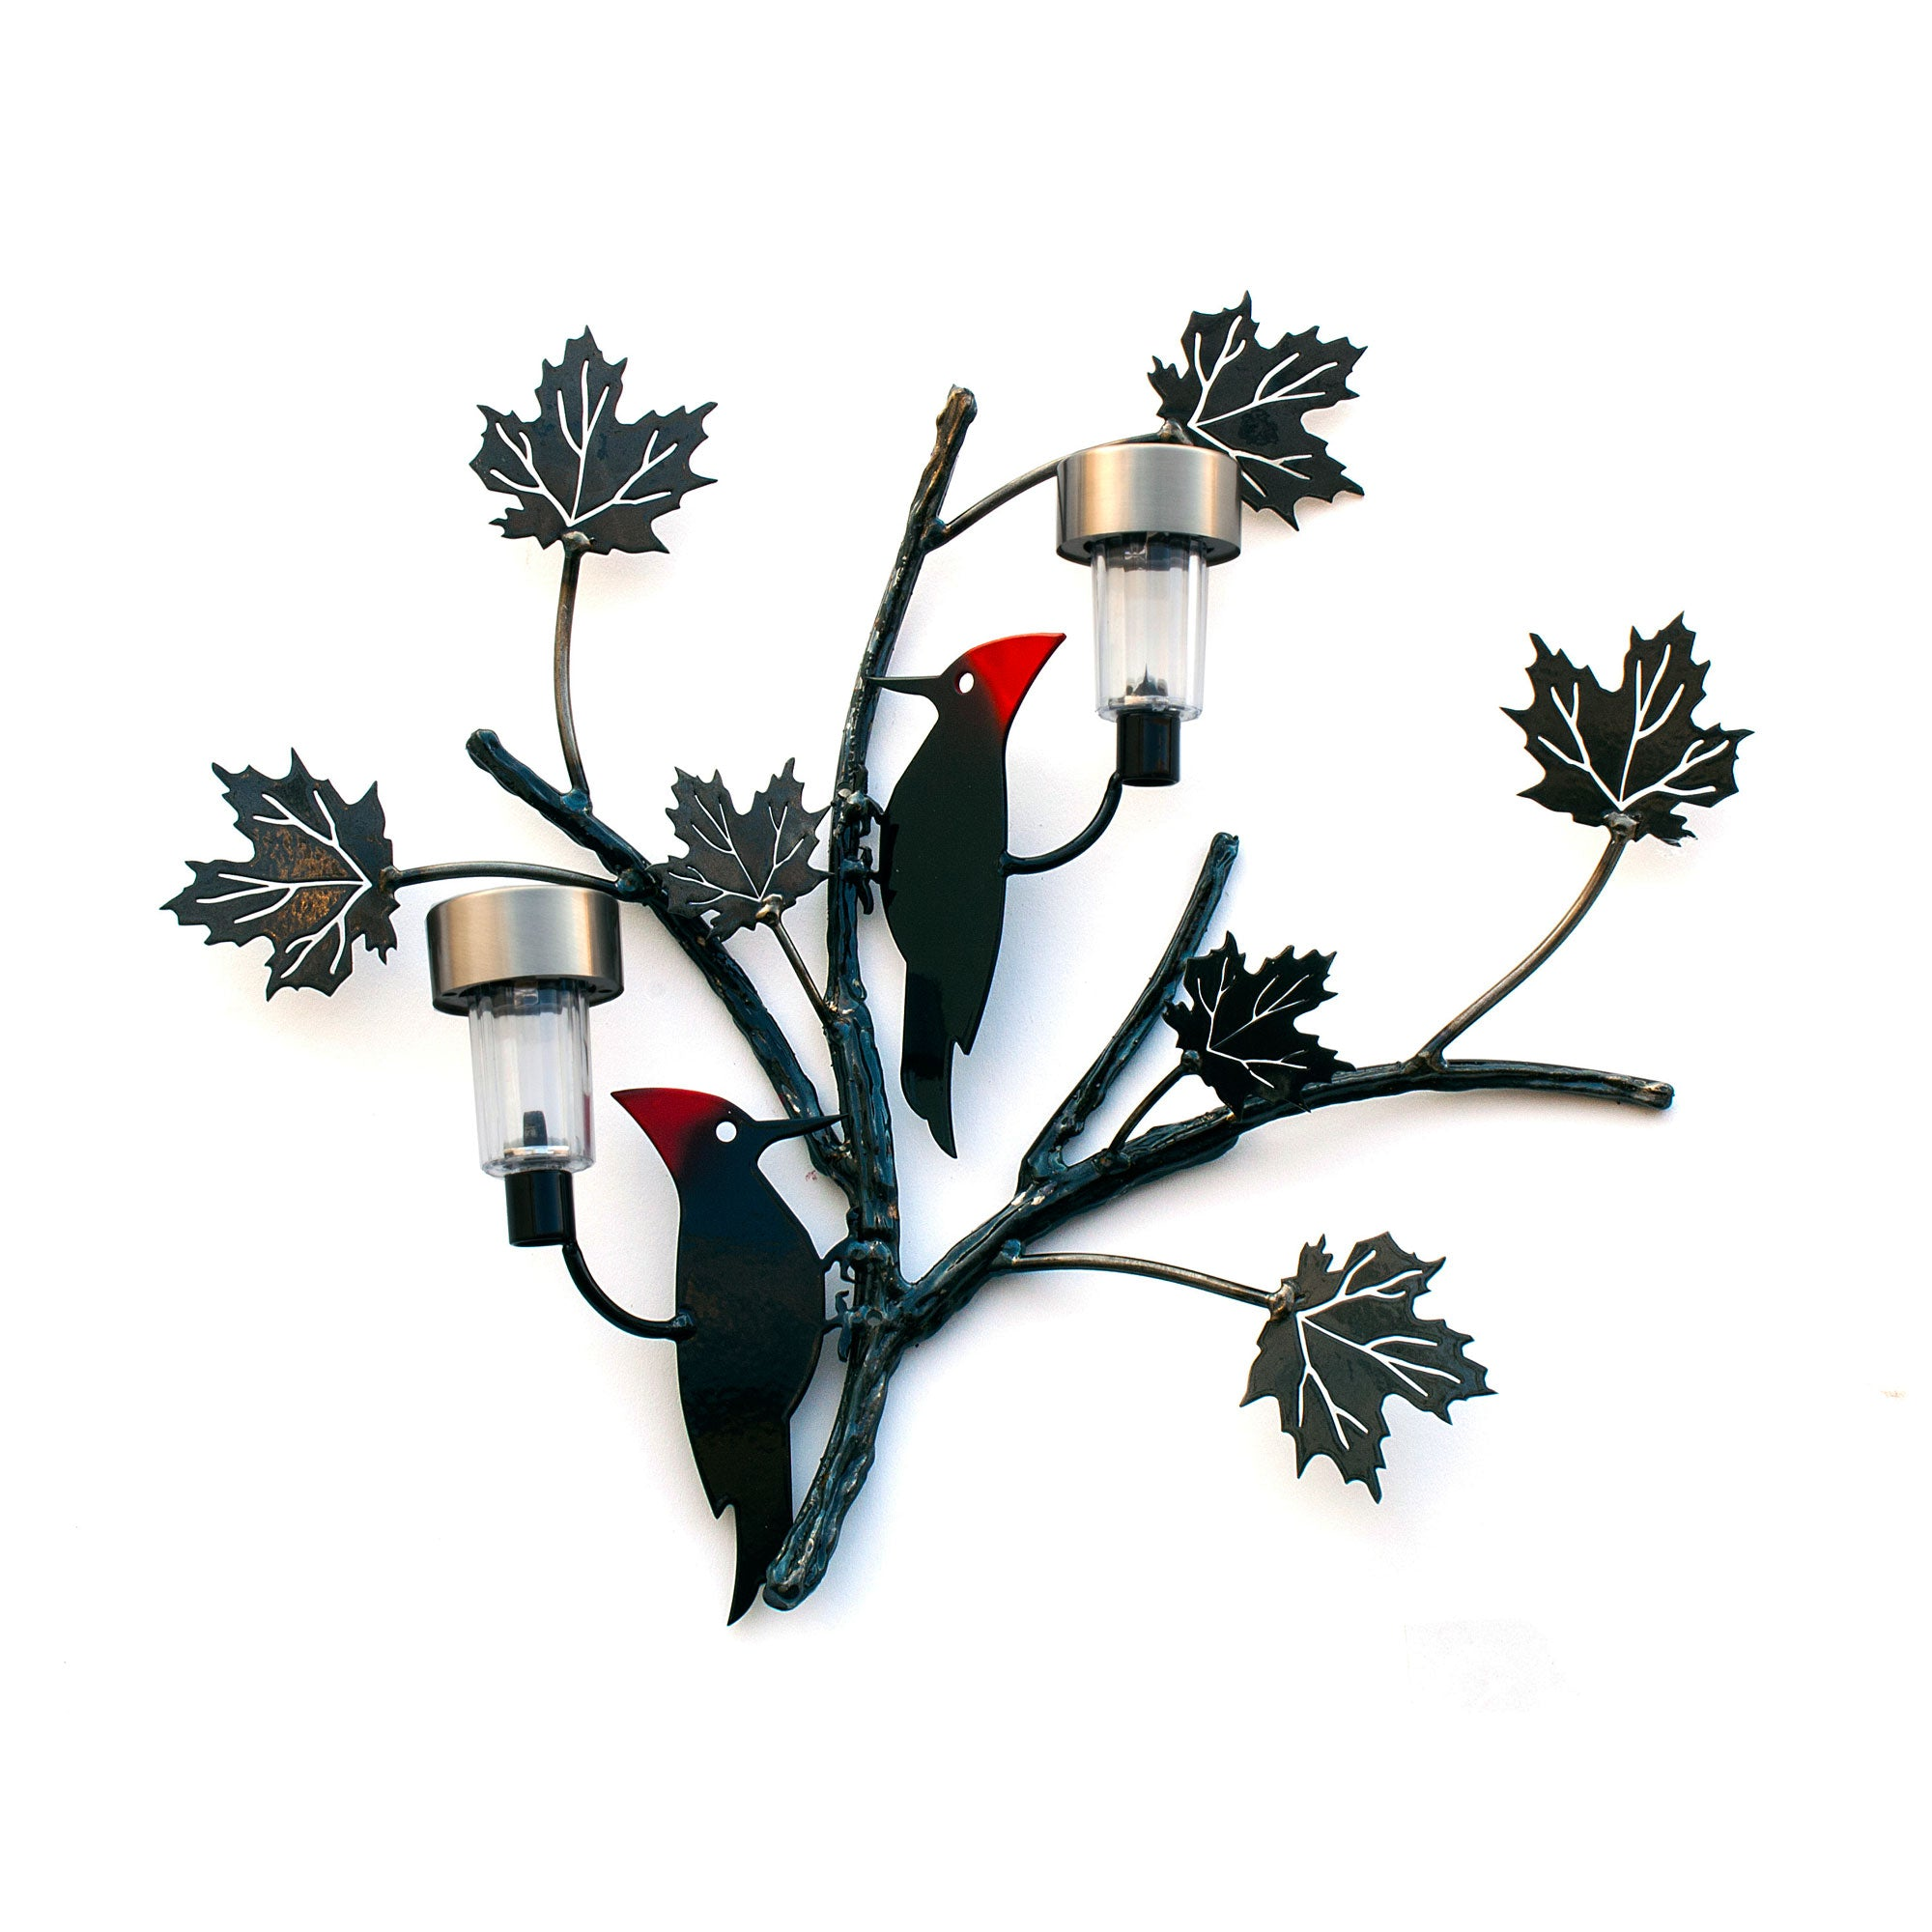 Woodpecker Birds on tree branches and Maple leaves with solar light for Garden and home décor